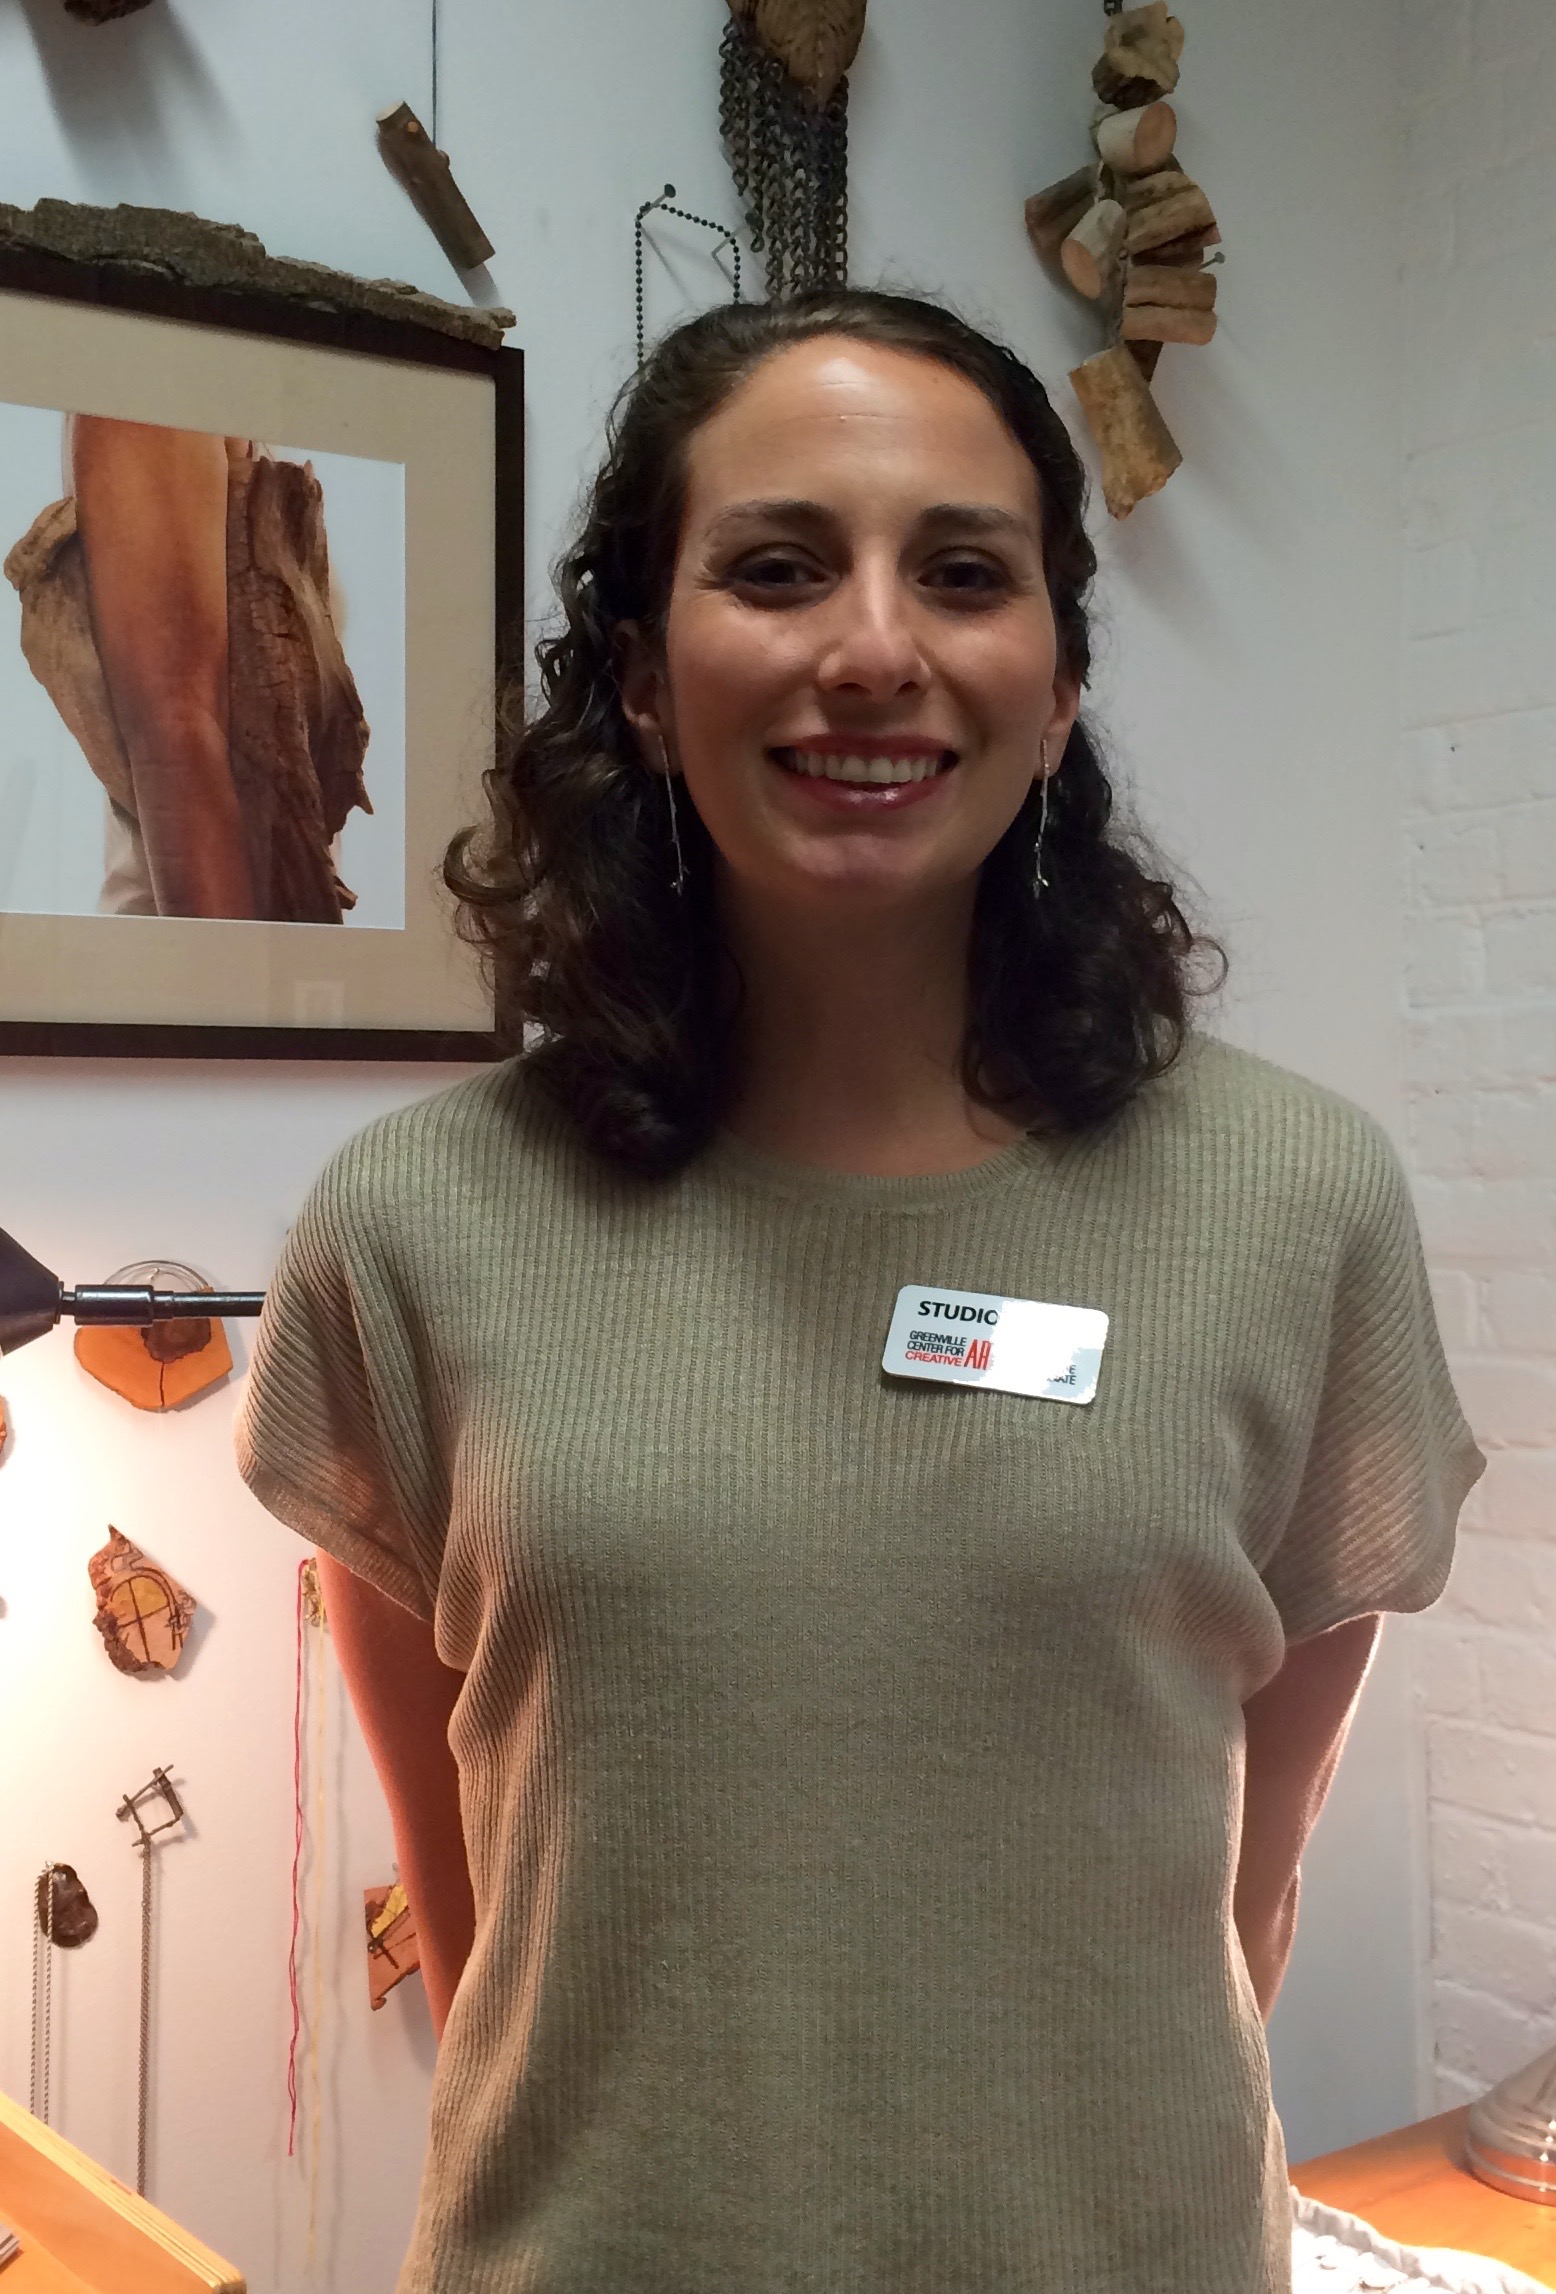 Kate Furman is back in Greenville! Her jewelry is amazing! You must drop by to visit her studio at Brandon Mill. It is an artistic wonder and an inspiration...  .